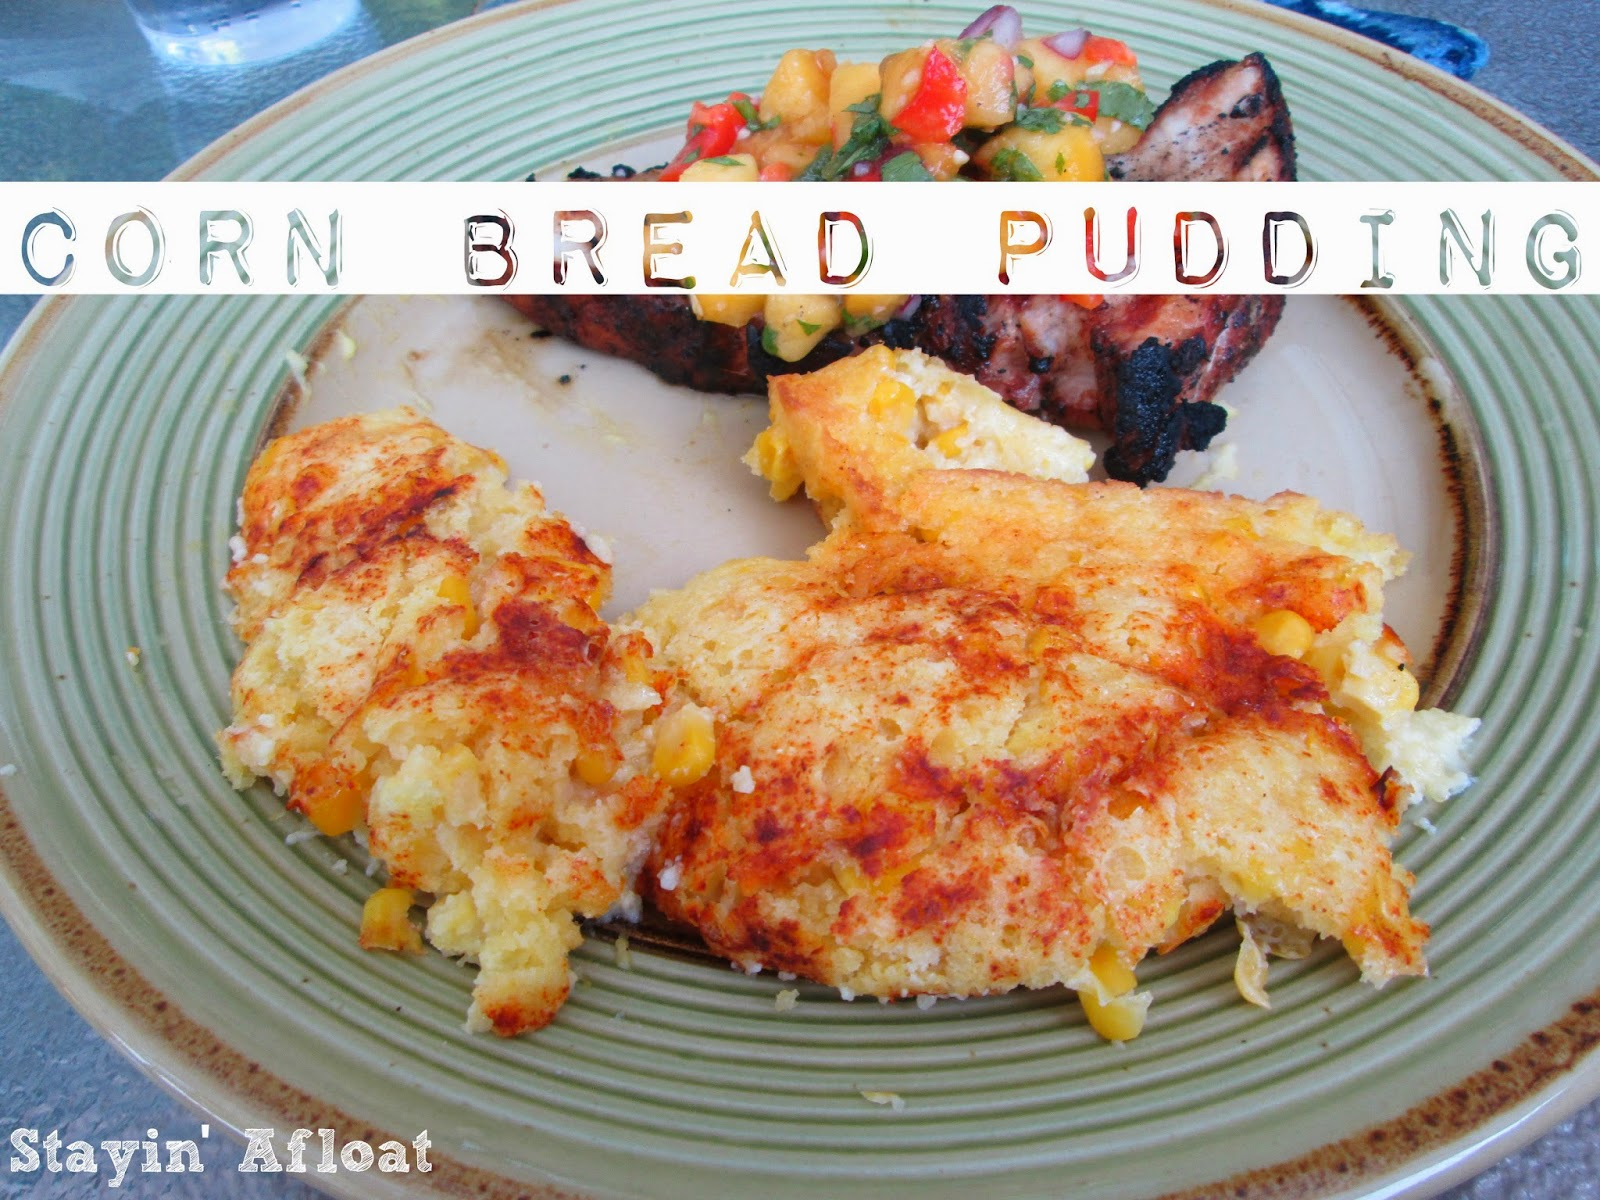 http://www.stayin-afloat.com/p/corn-bread-pudding.html